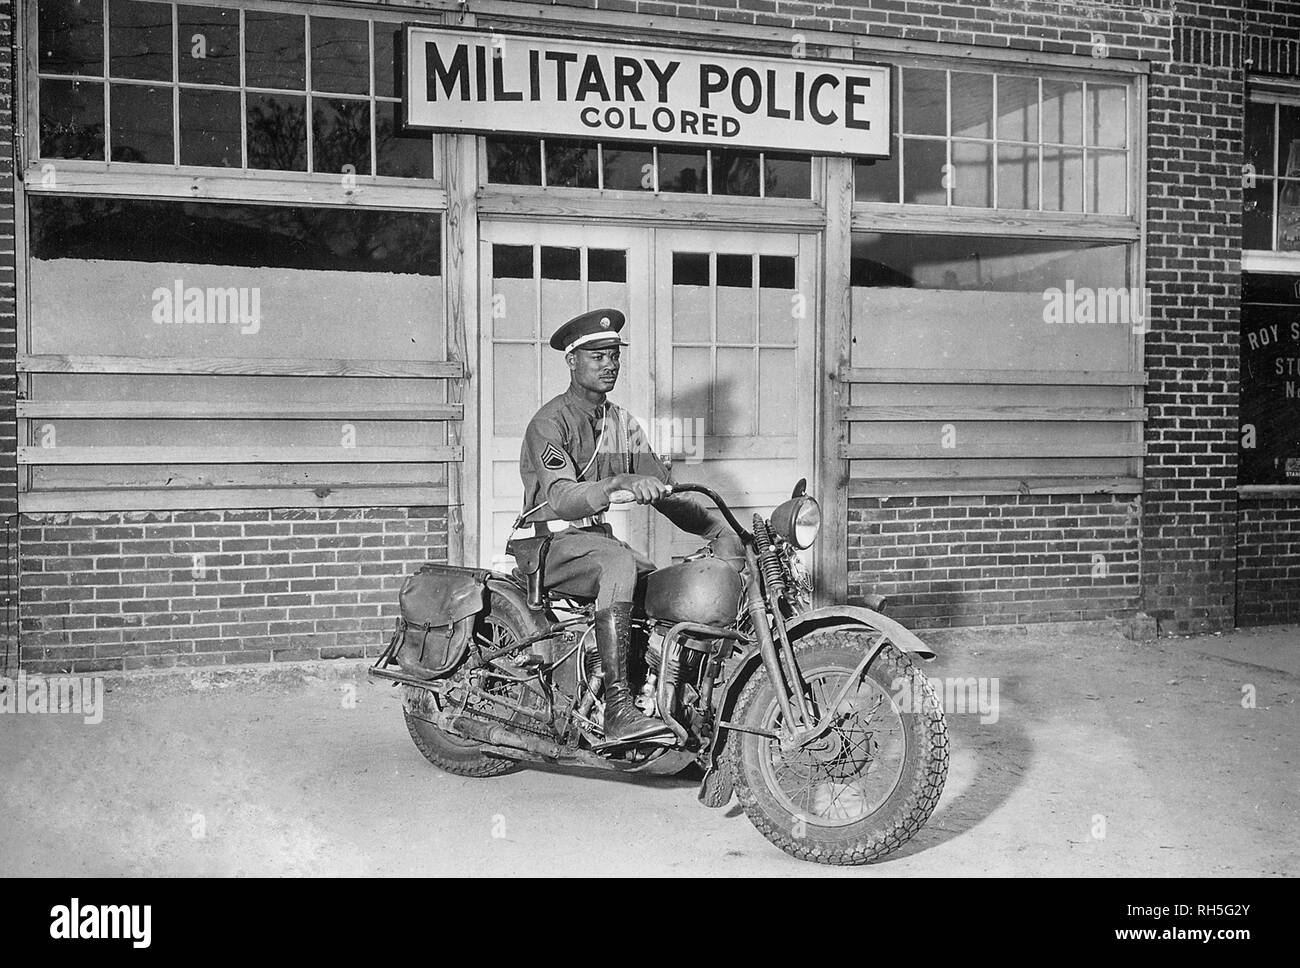 An MP on motorcycle stands ready to answer all calls around his area. Columbus, Georgia. April 13, 1942. - Stock Image